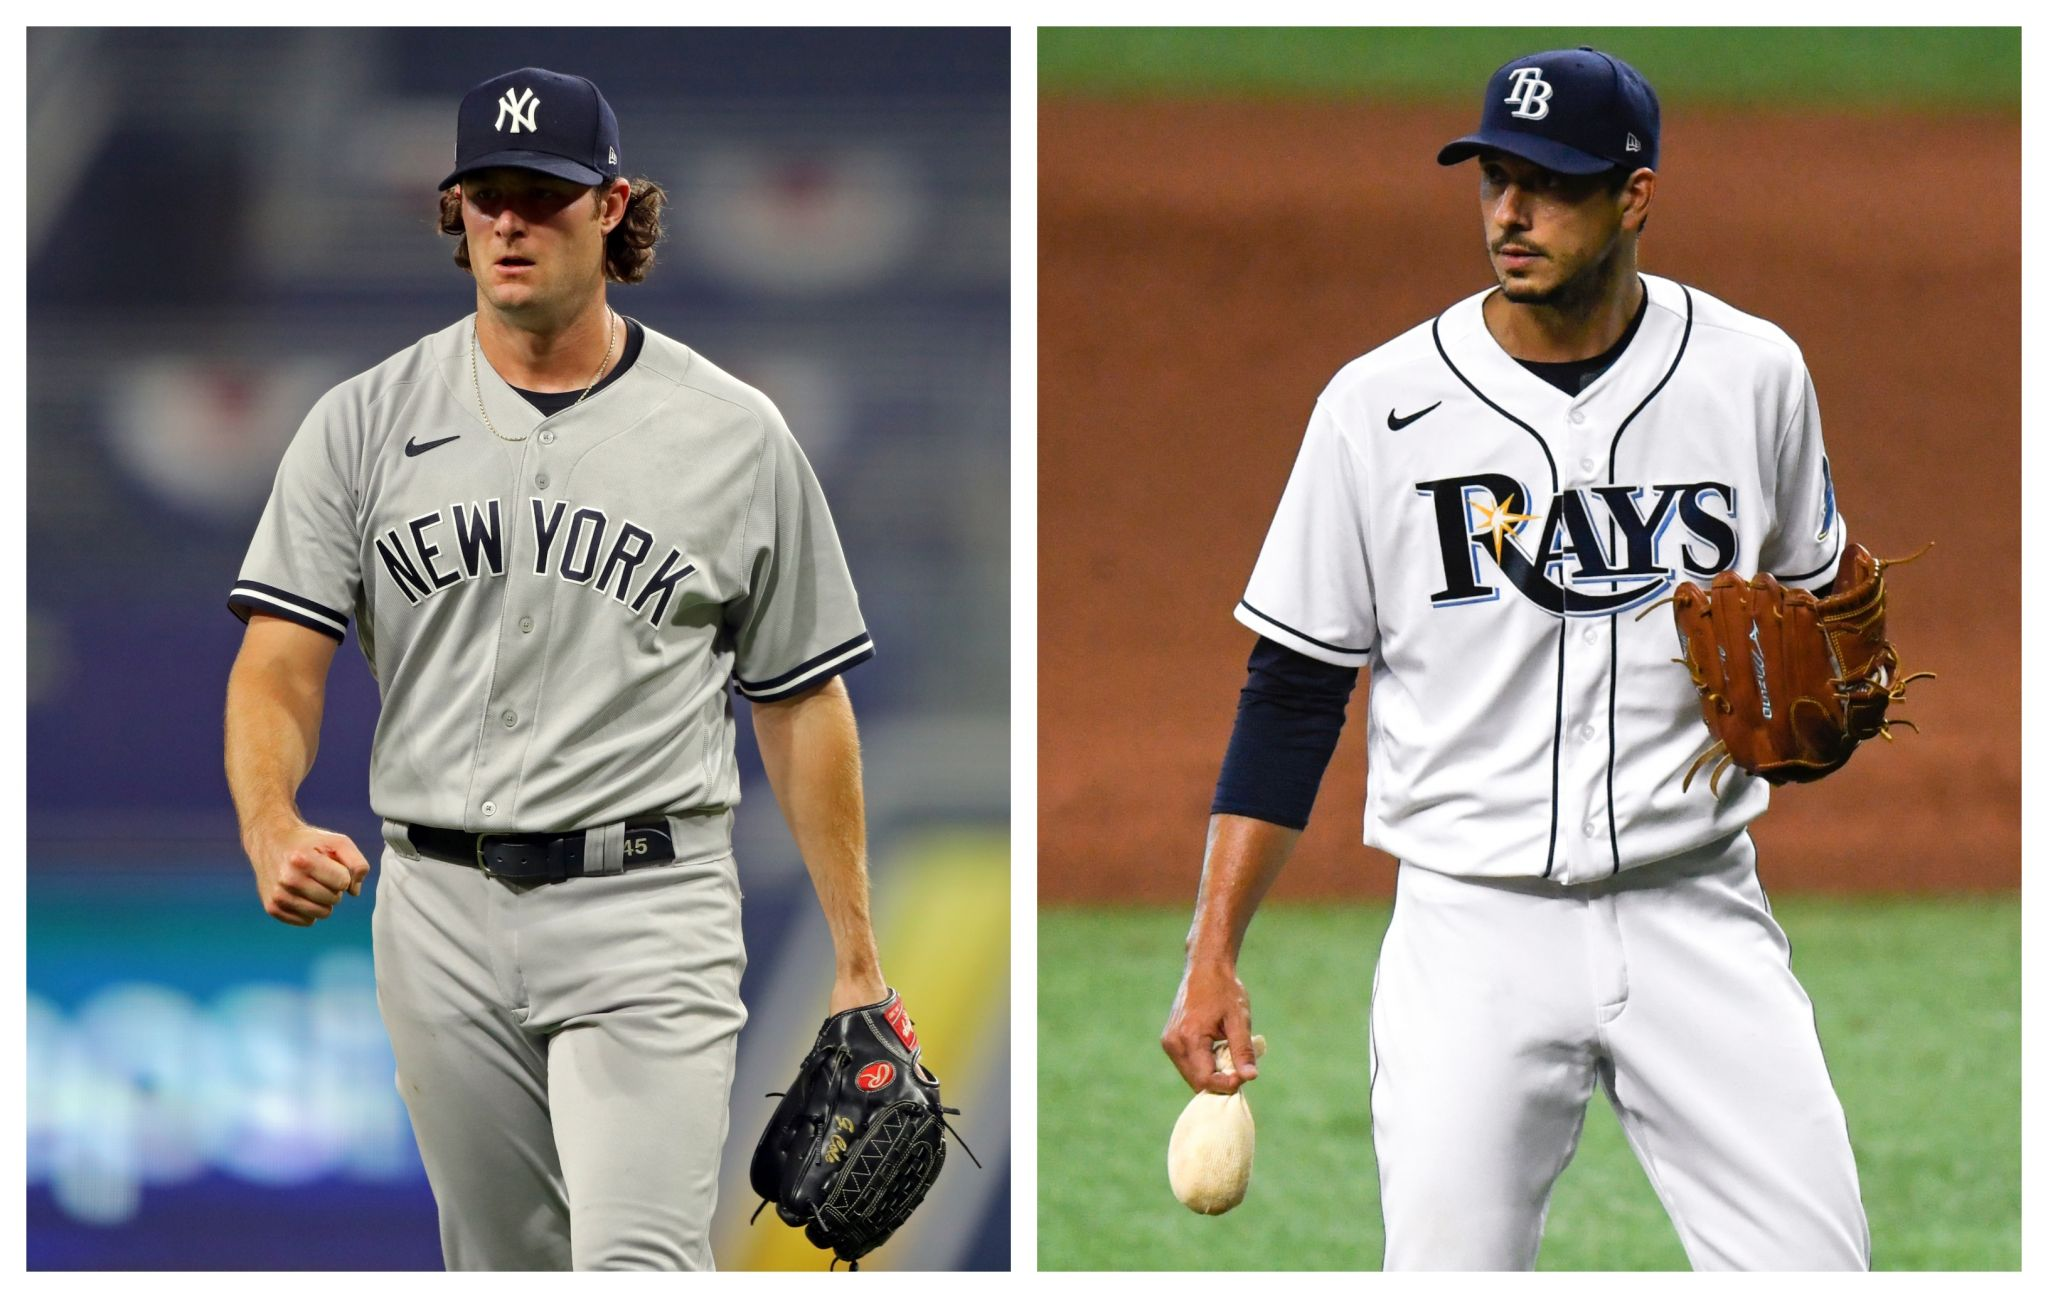 should astros fans be rooting for the yankees or rays rooting for the yankees or rays